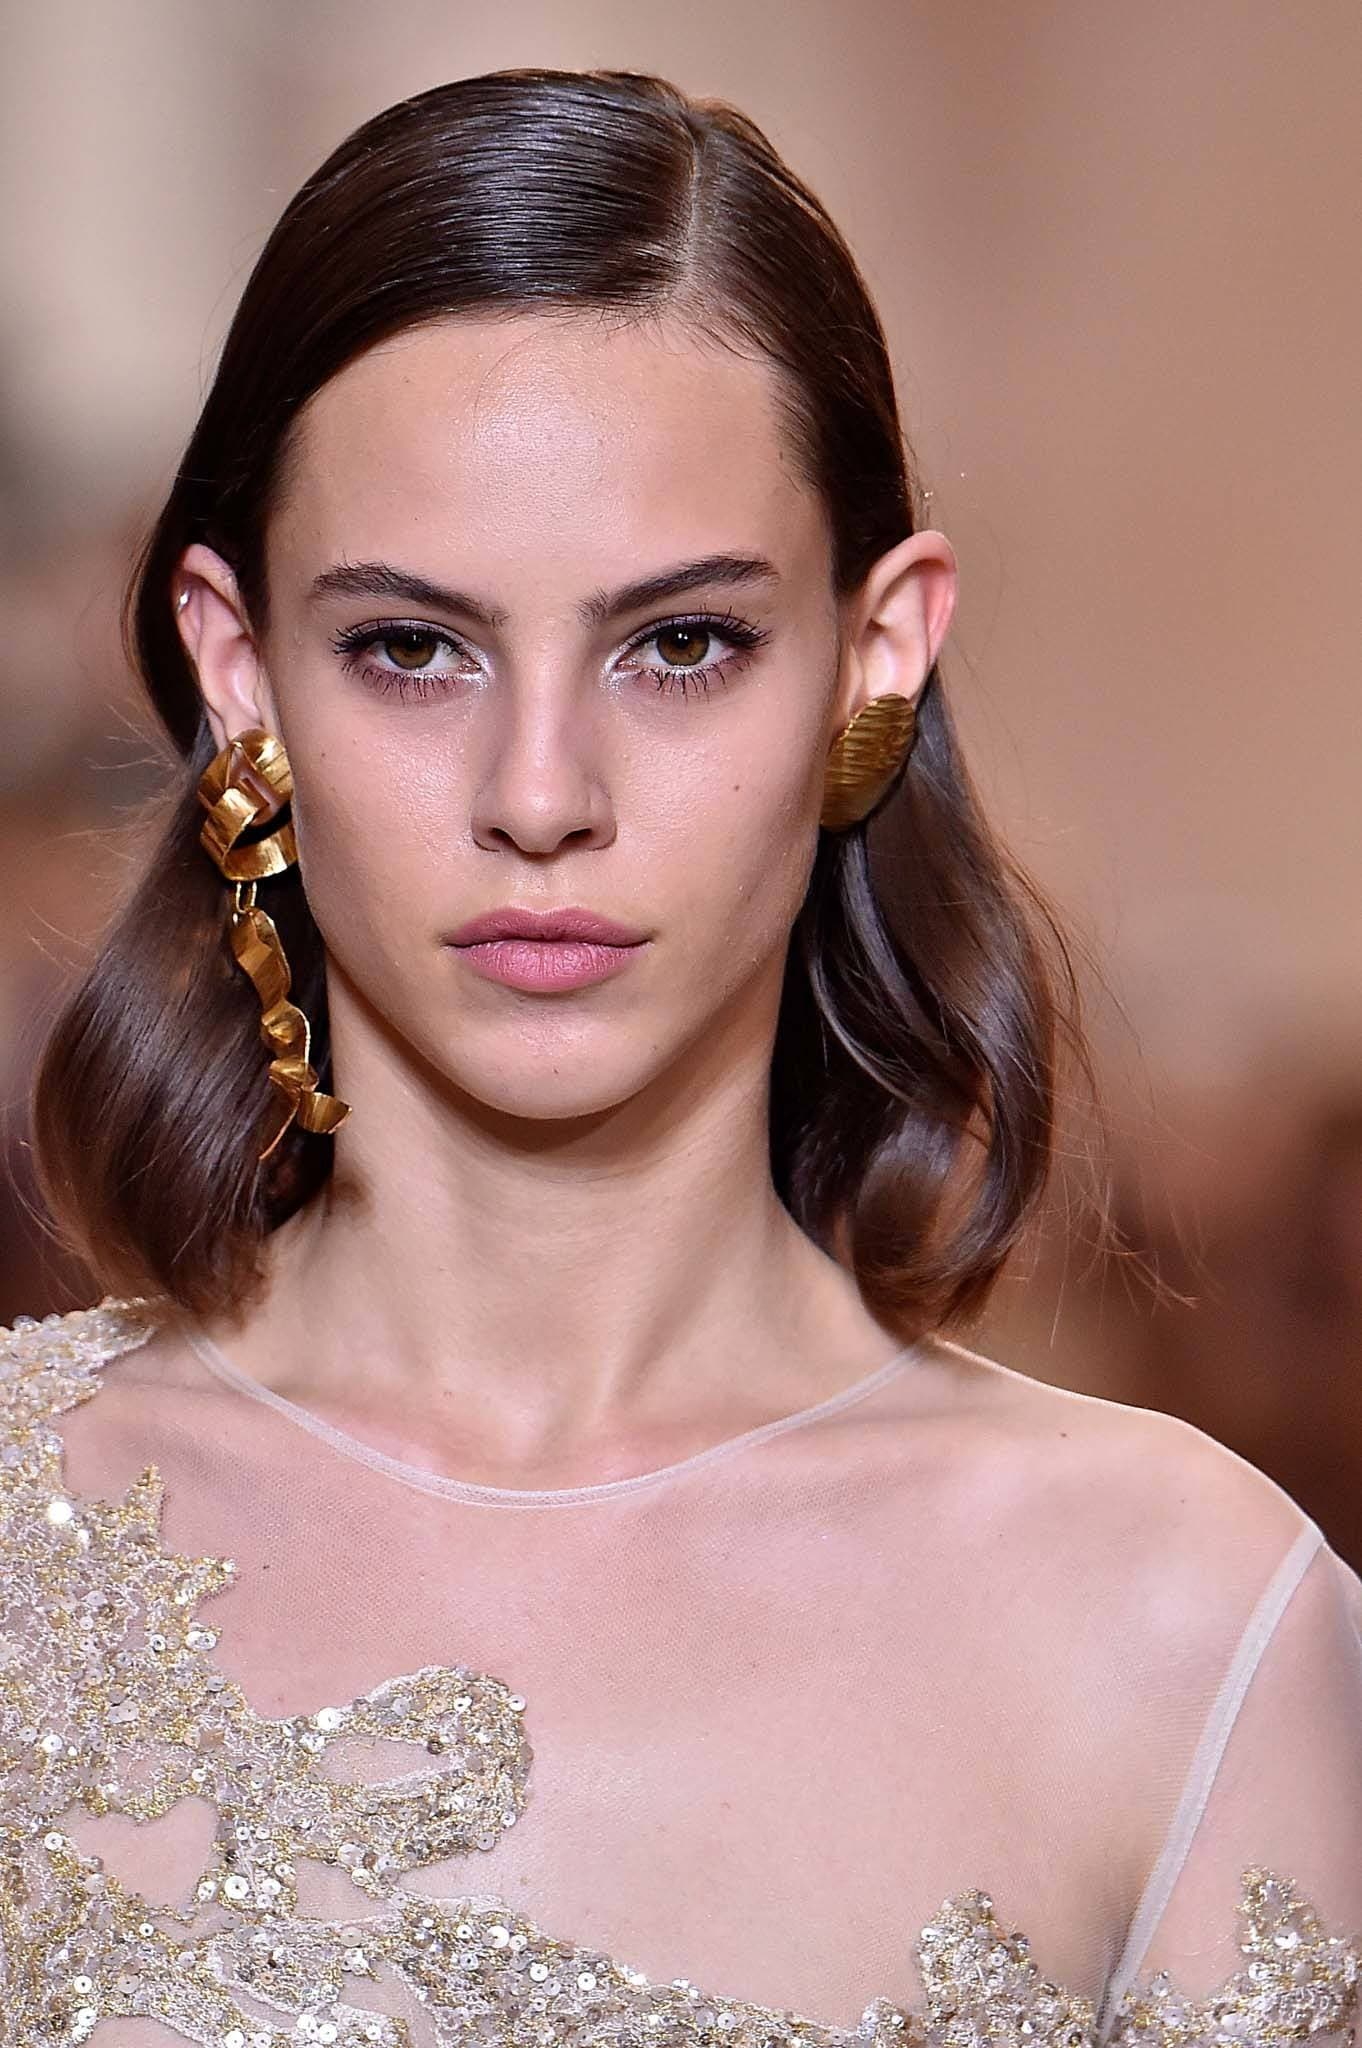 Wedding guest hair: Shot of a model with medium brown glossy waves on the runway, wearing a white dress with earrings on the runway